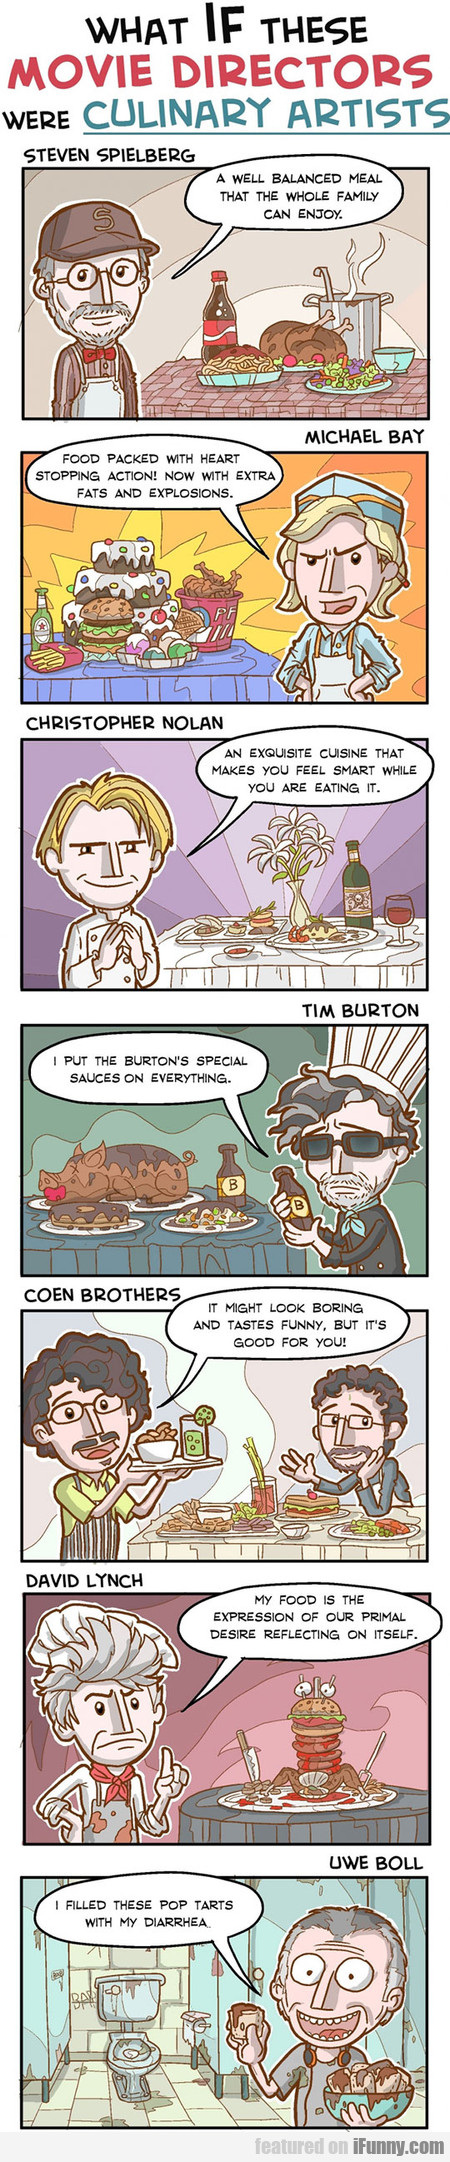 If Famous Movie Directors Were Chefs